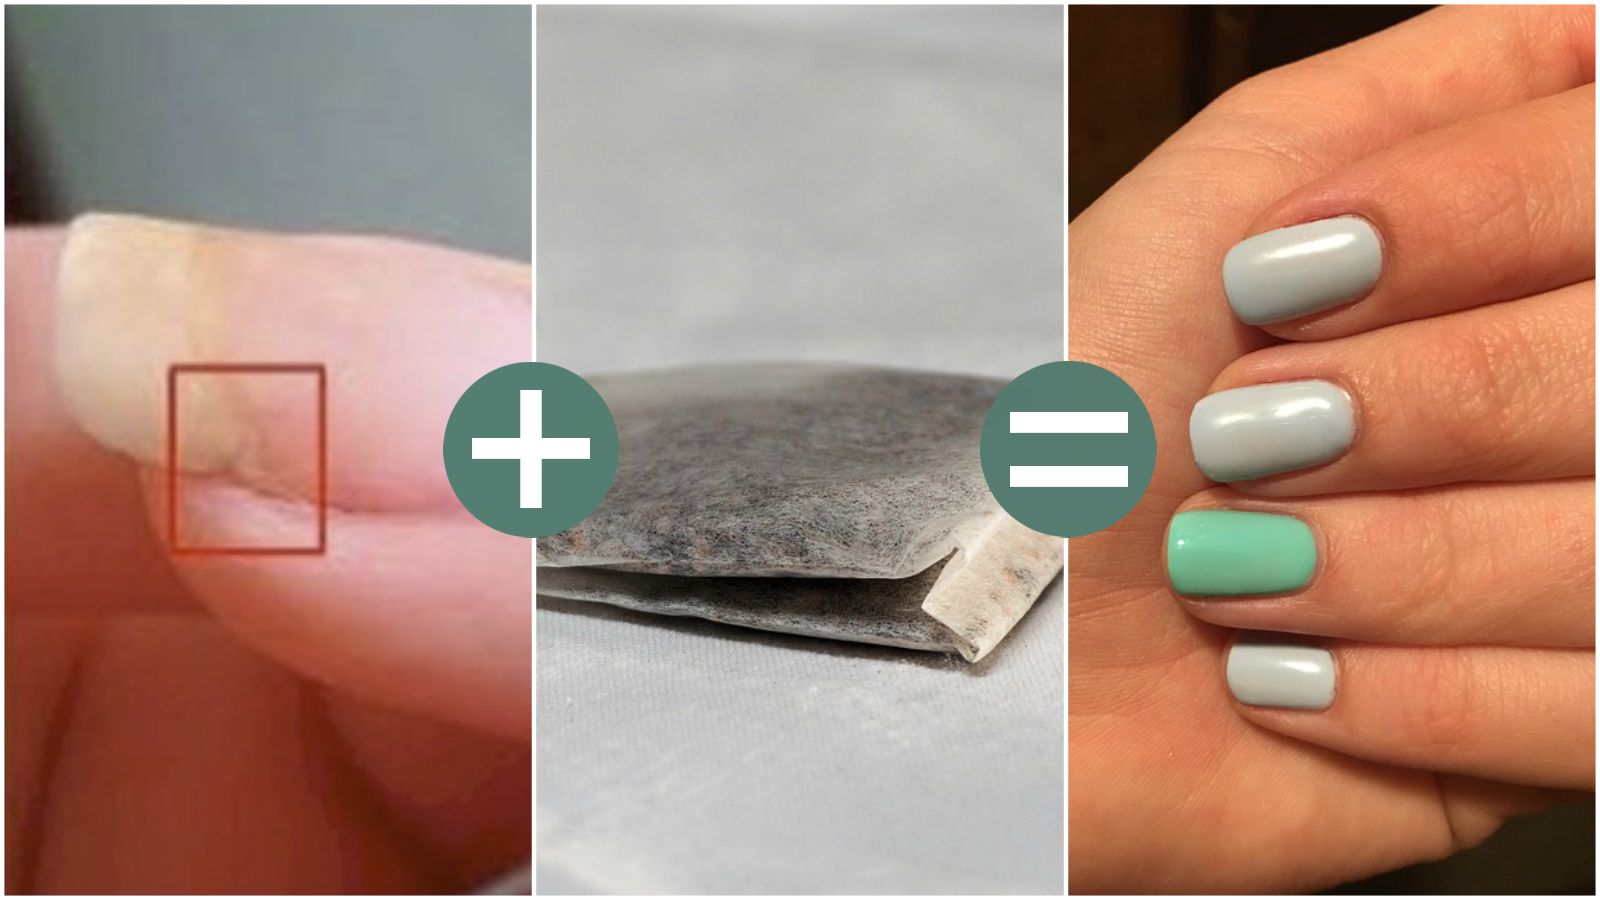 Broke Your Nail? Learn How to Fix Broken Nails with the Help of a Tea Bag!